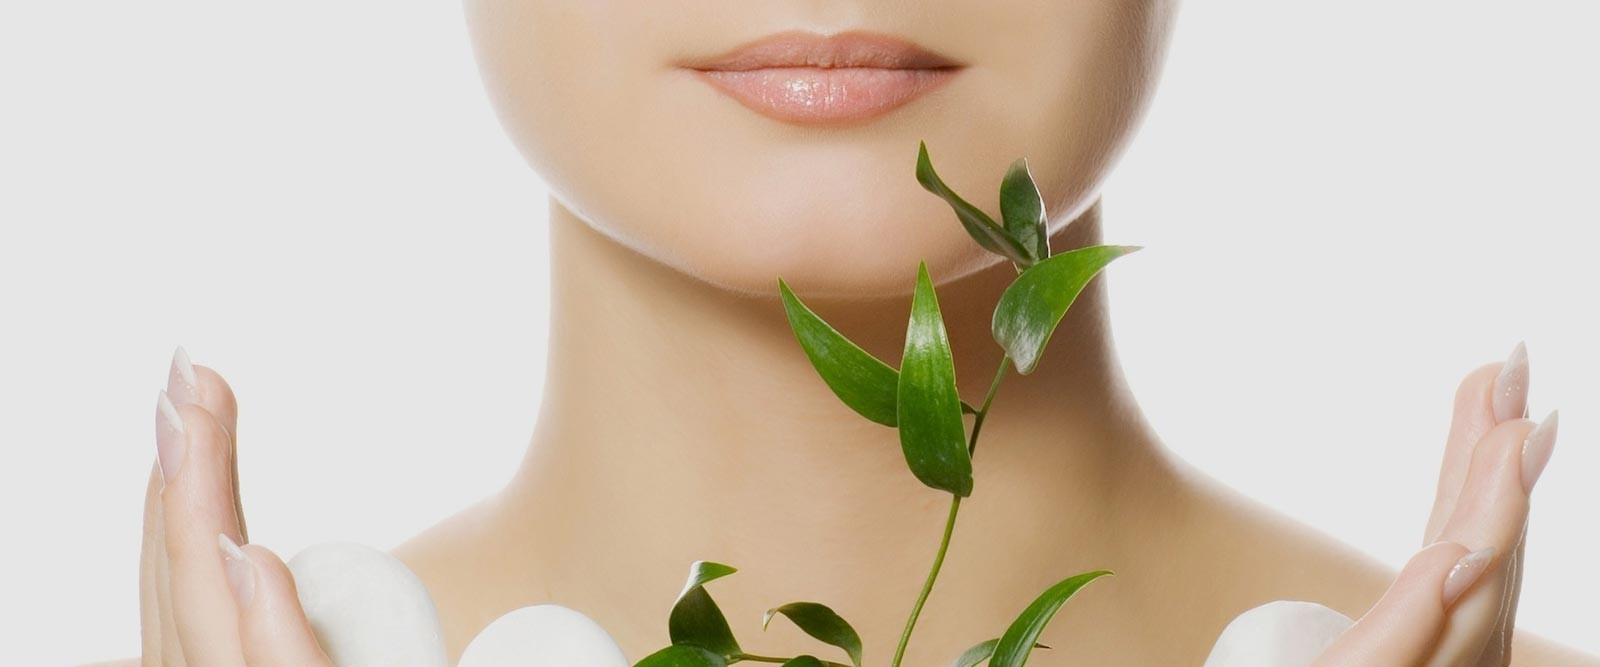 Beauty treatment for body and mind- Wellness and vital patches